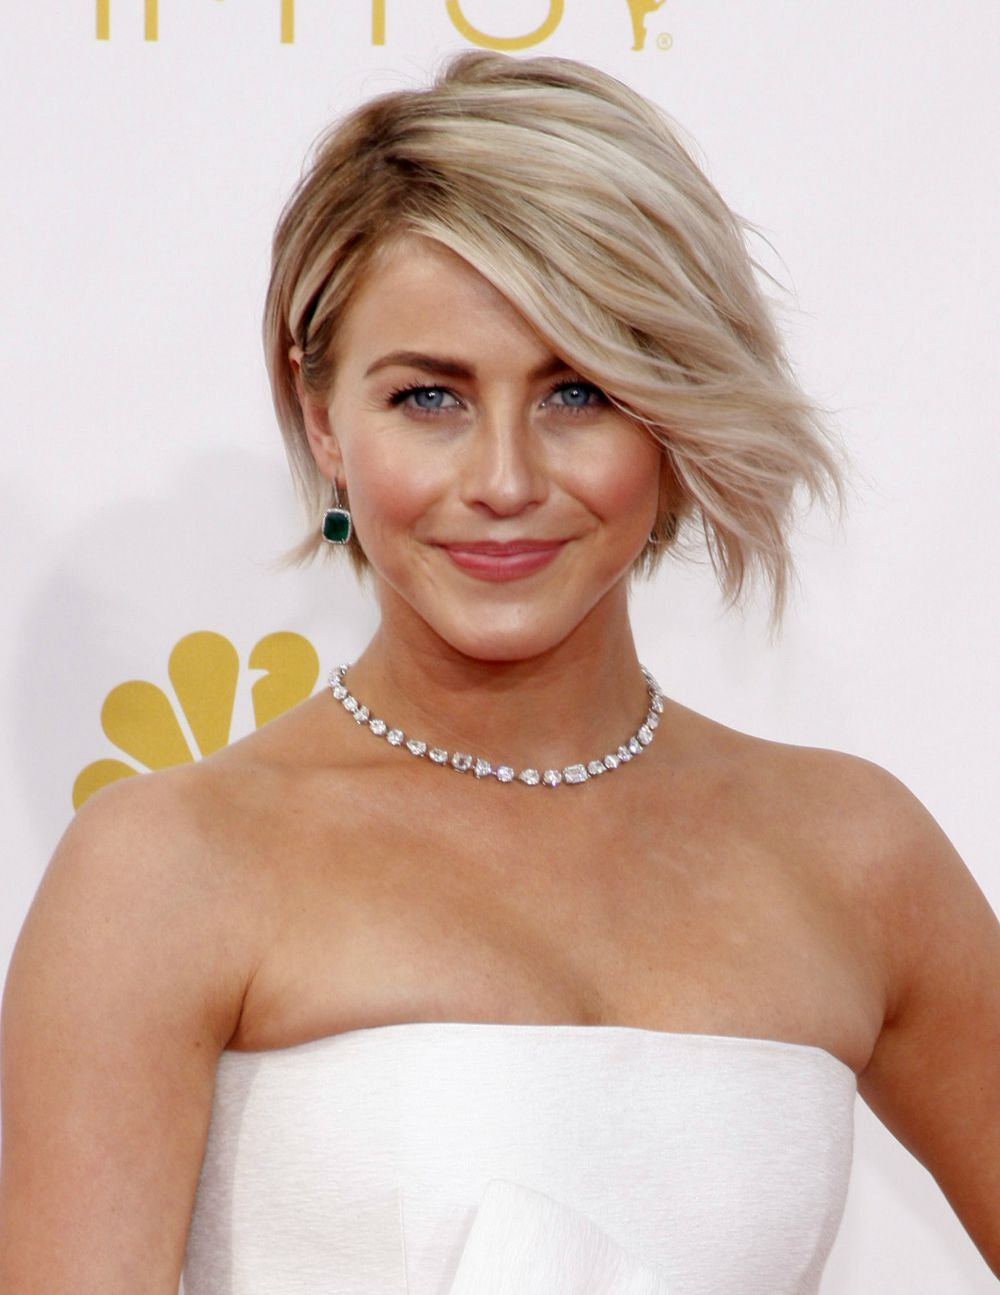 julianne hough hair styles best hairstyles bobs and lobs to gush 4763